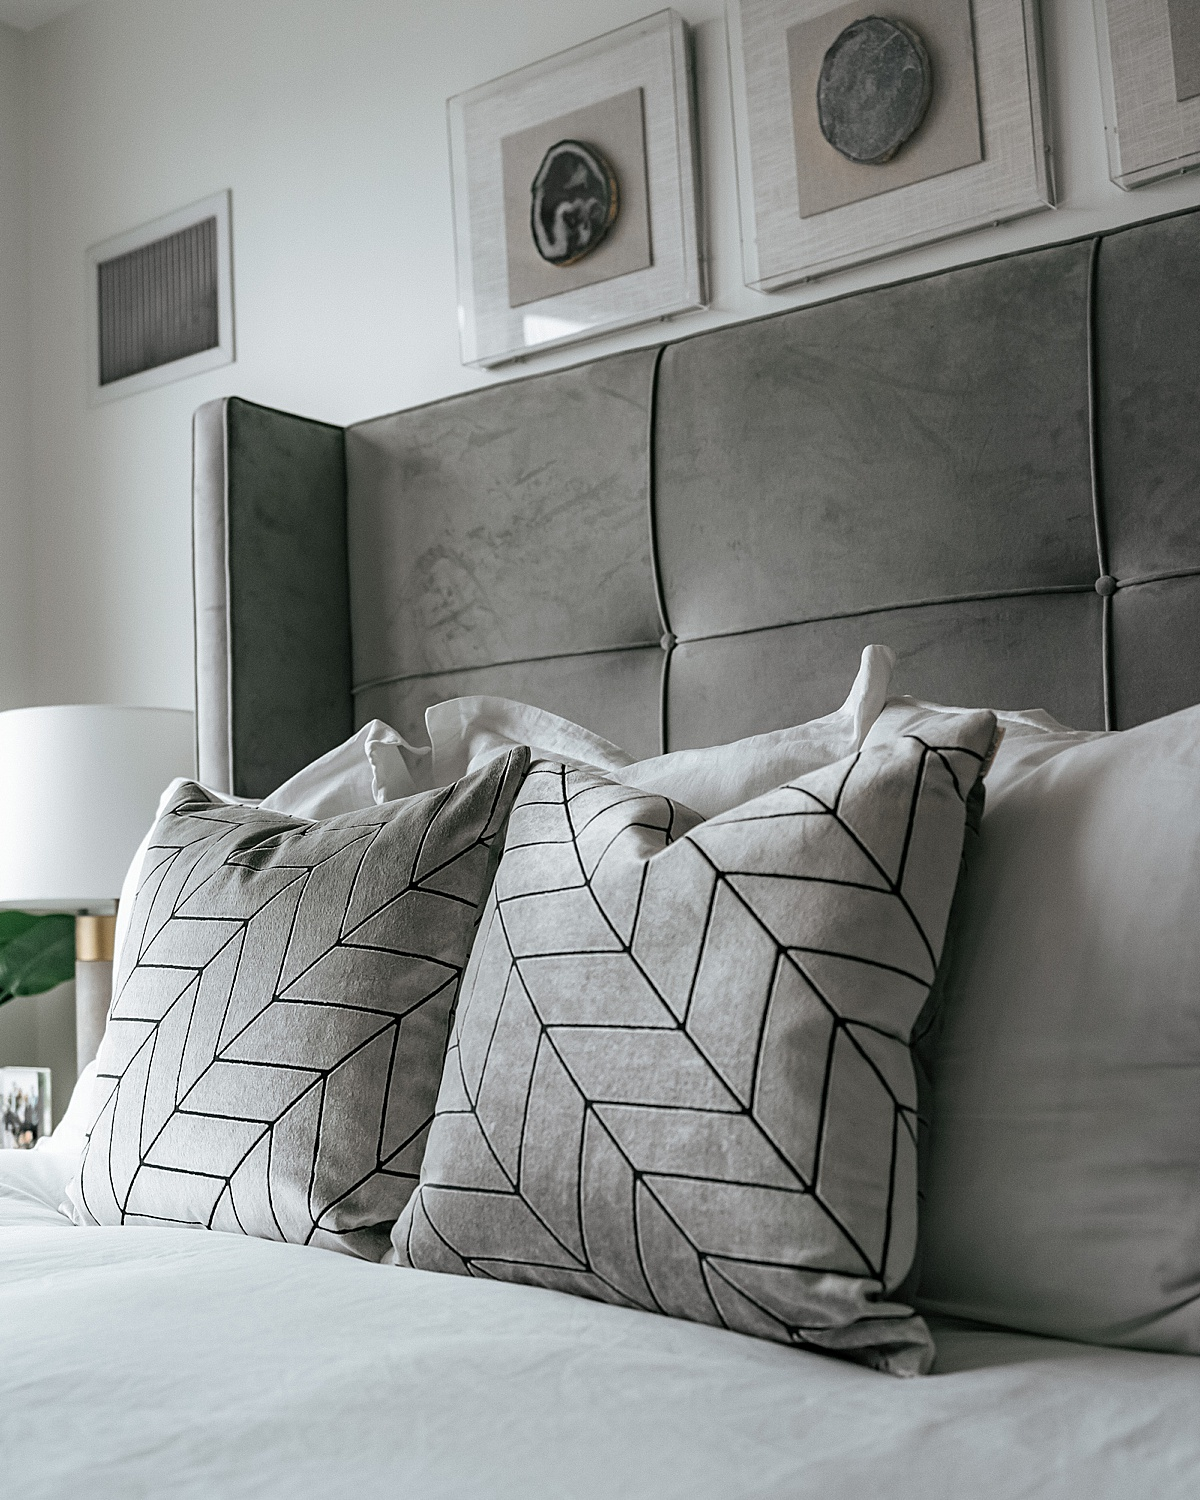 Brooklinen, nyc apartment, best sheets, olivia rink bedroom, olivia rink apartment, olivia rink bedroom, brooklinen sheets, affordable sheets, new york life, new york apartment, nyc living, west elm, kathy kuo home, home decor, bedroom decor, decorative pillows